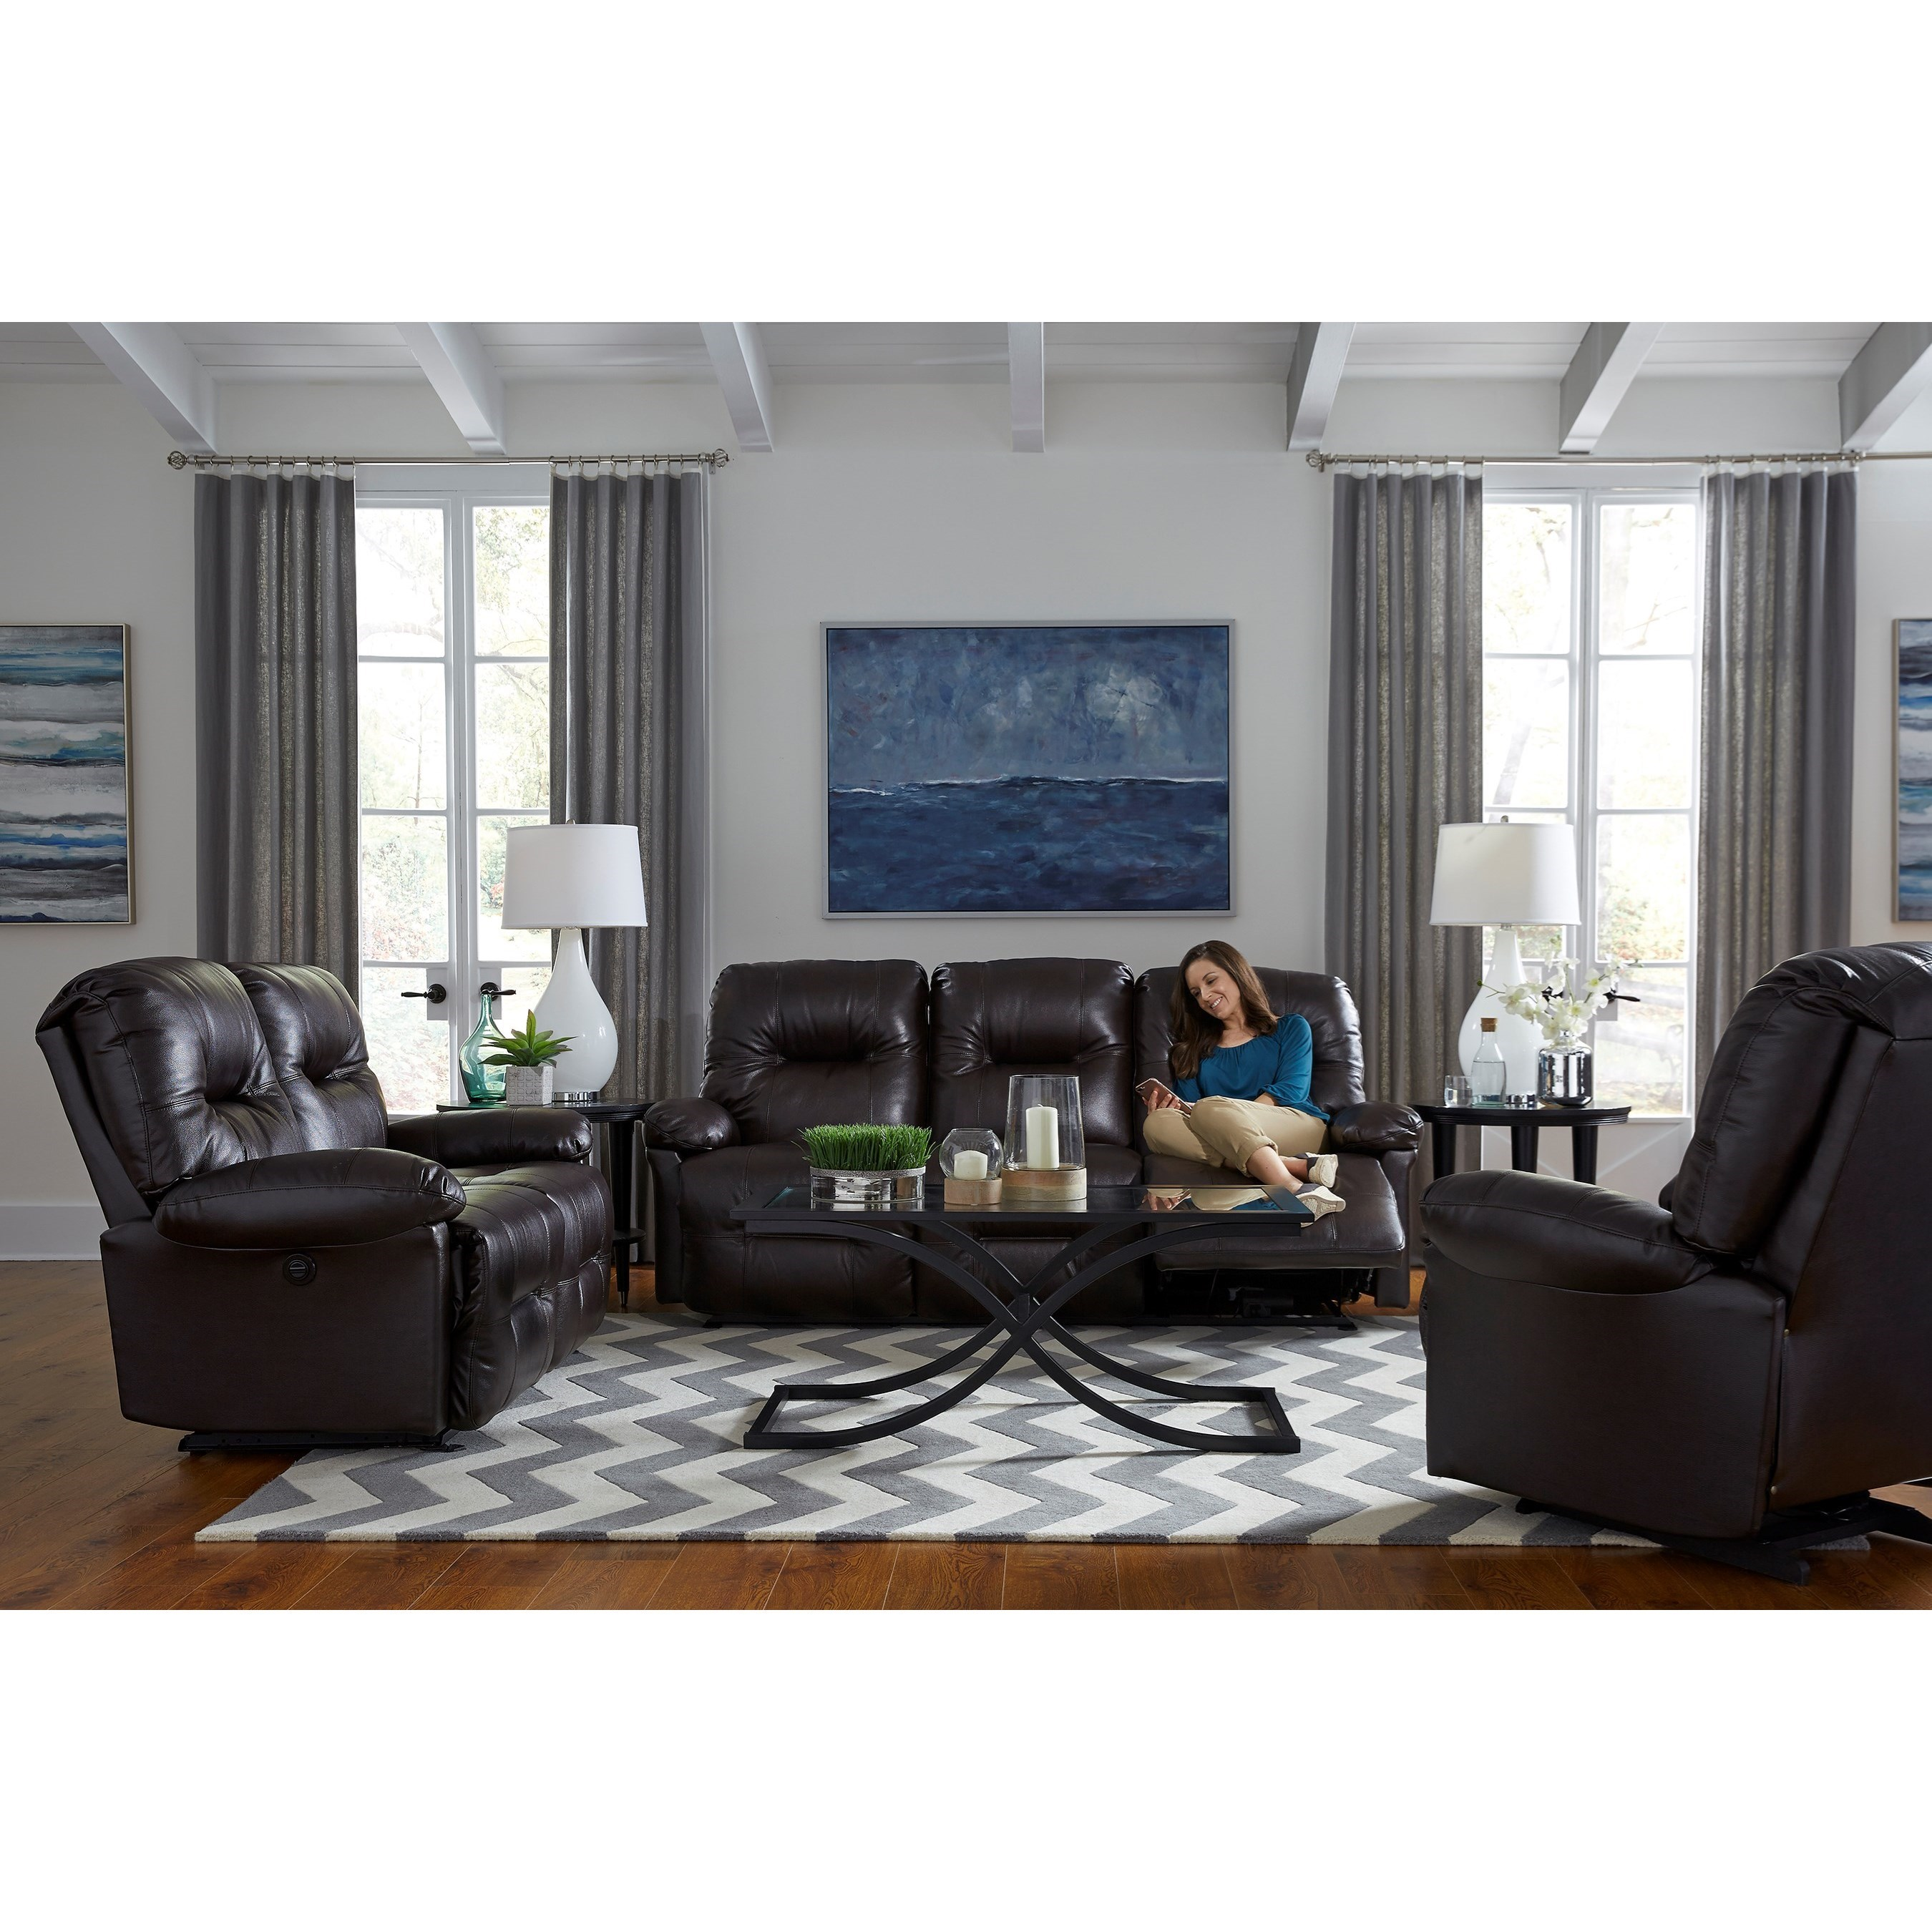 S501 Zaynah Power Reclining Living Room Group by Best Home Furnishings at Baer's Furniture